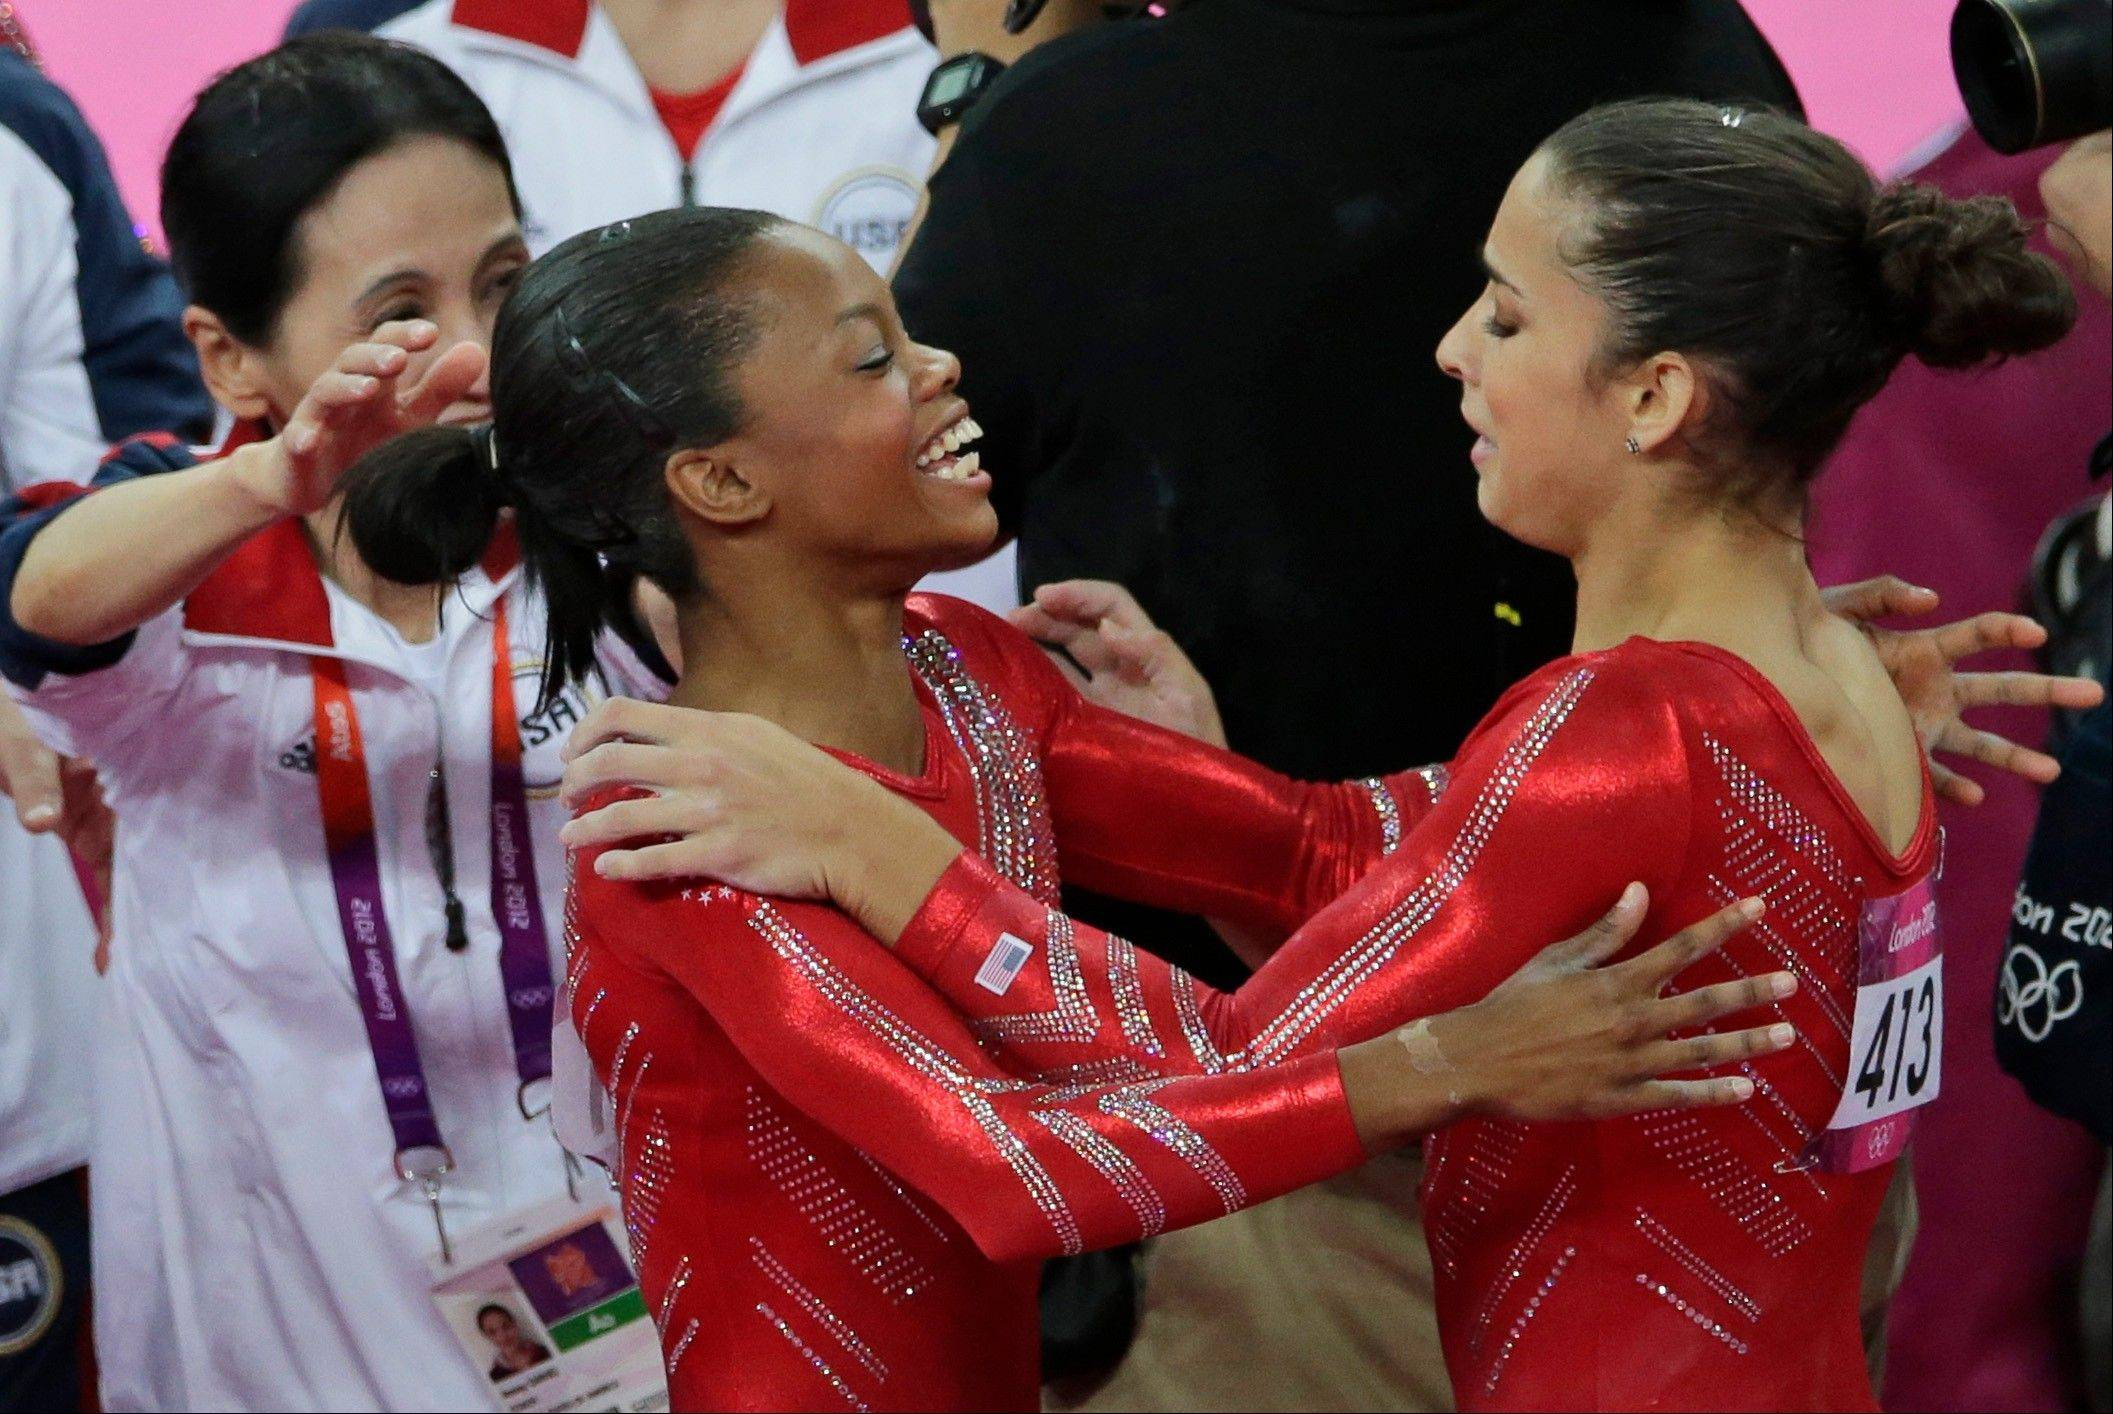 American gymnast Gabby Douglas hugs teammate Aly Raisman during the women's team final on Tuesday at the Summer Olympics. On Thursday, both will compete in the all-around final.